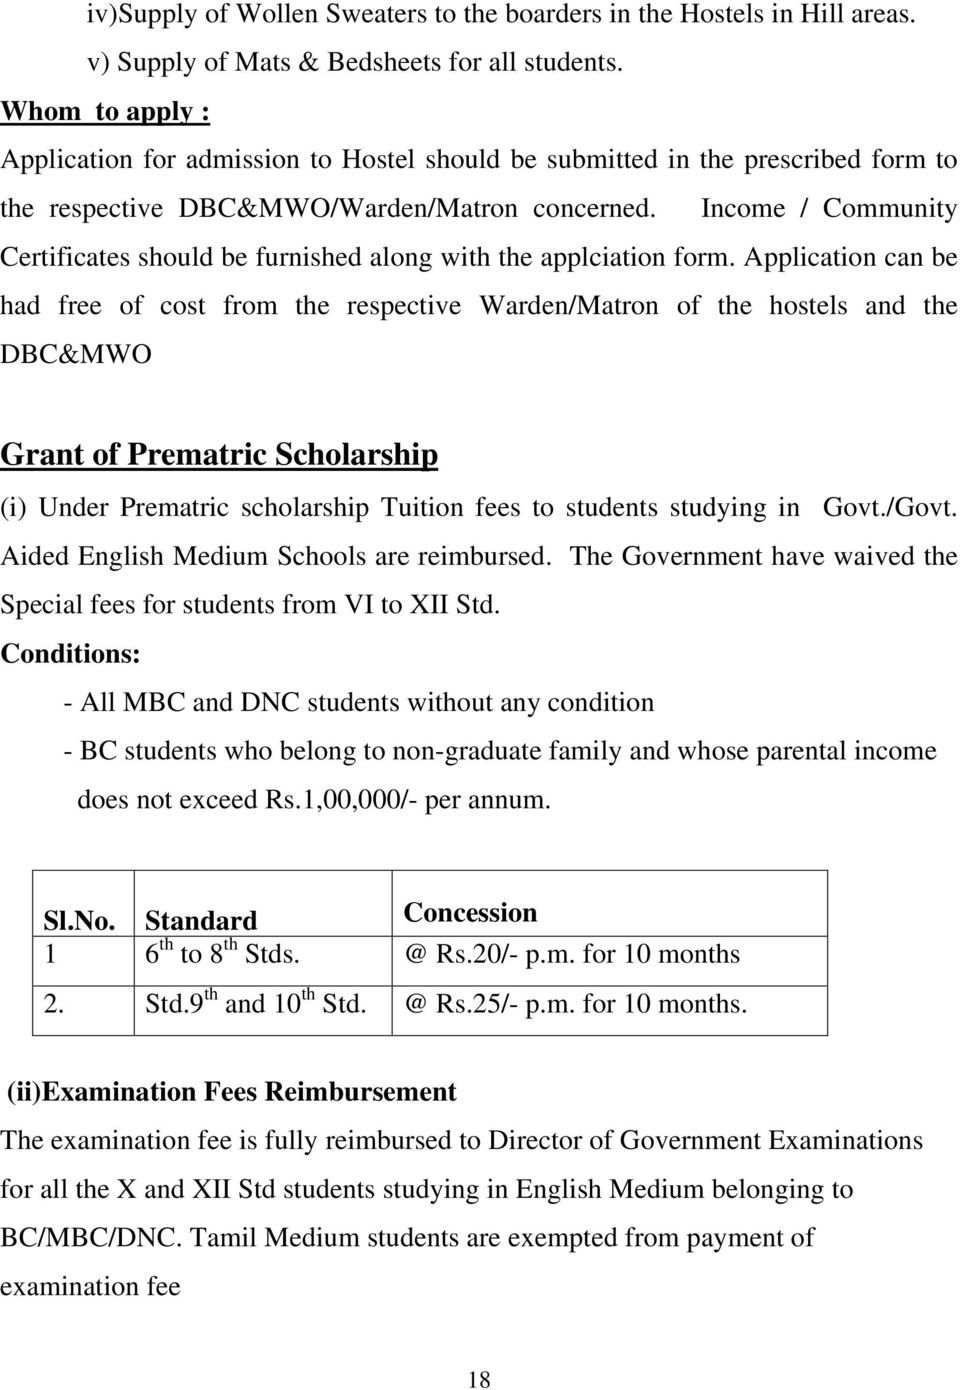 Income / Community Certificates should be furnished along with the applciation form.